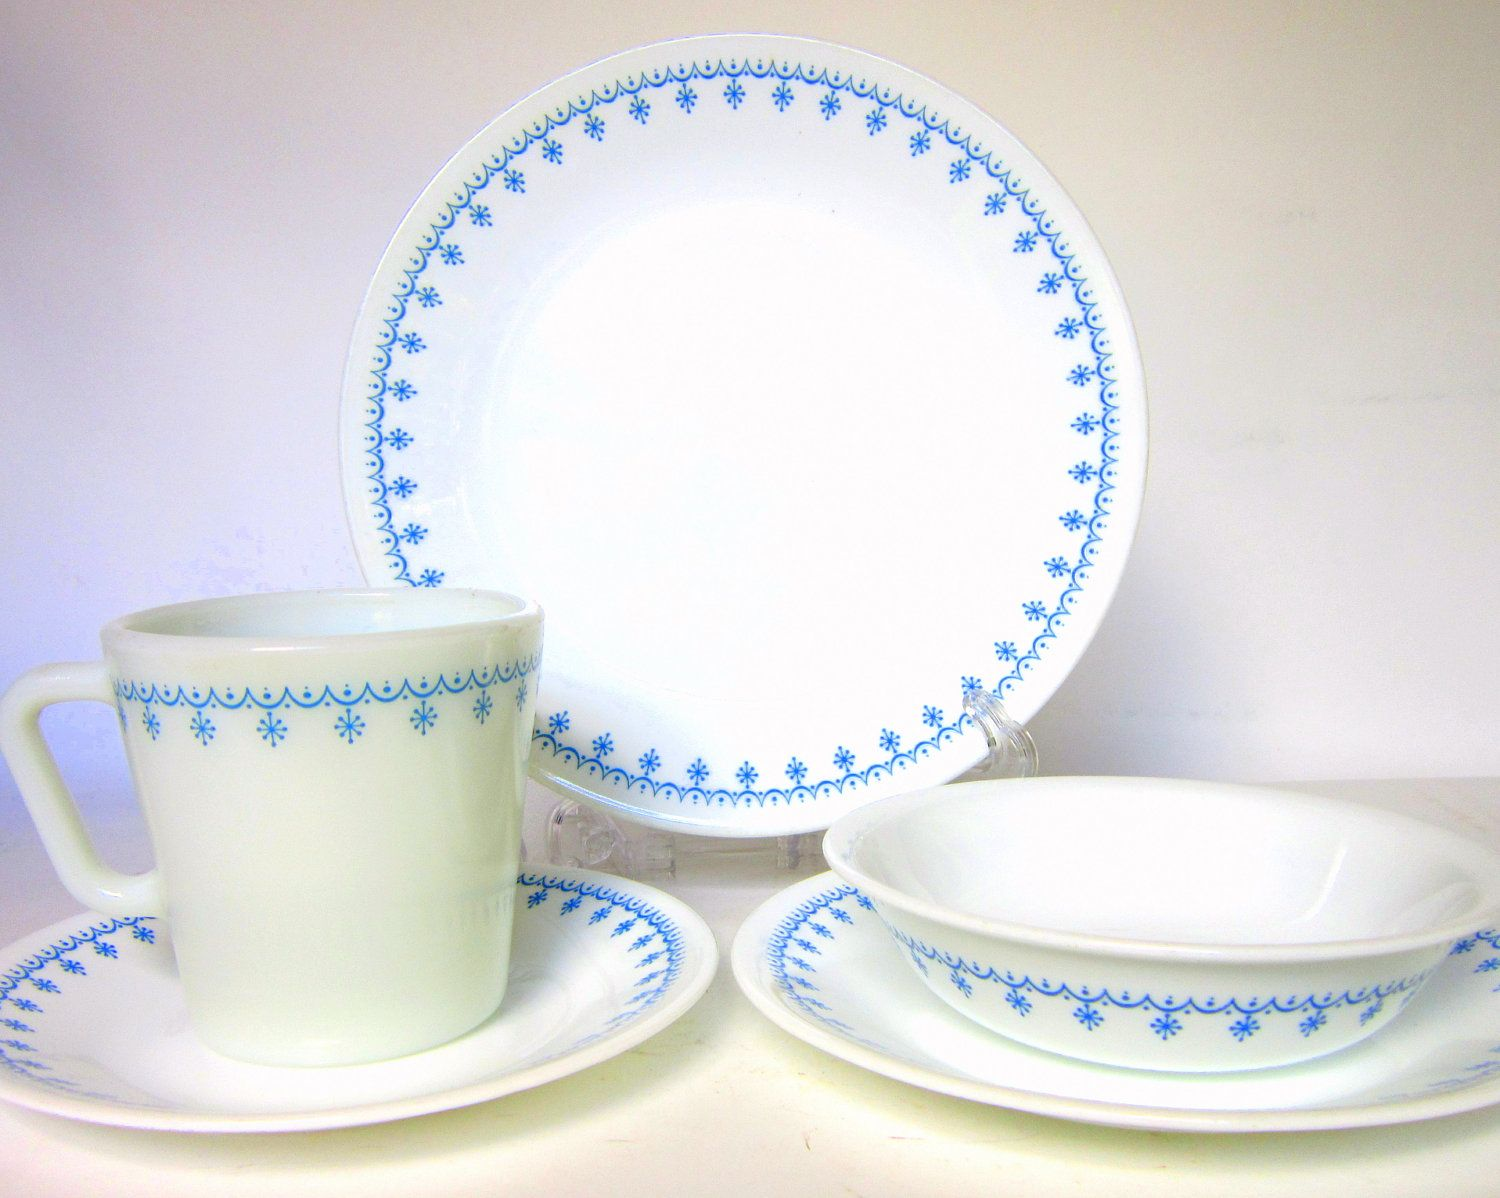 30-Pc Corelle \ Snowflake Blue\  Dinnerware Set for 6- Garland Blue \u0026 White Dishes and Pyrex Mugs Livingware  sc 1 st  Pinterest & Corelle \